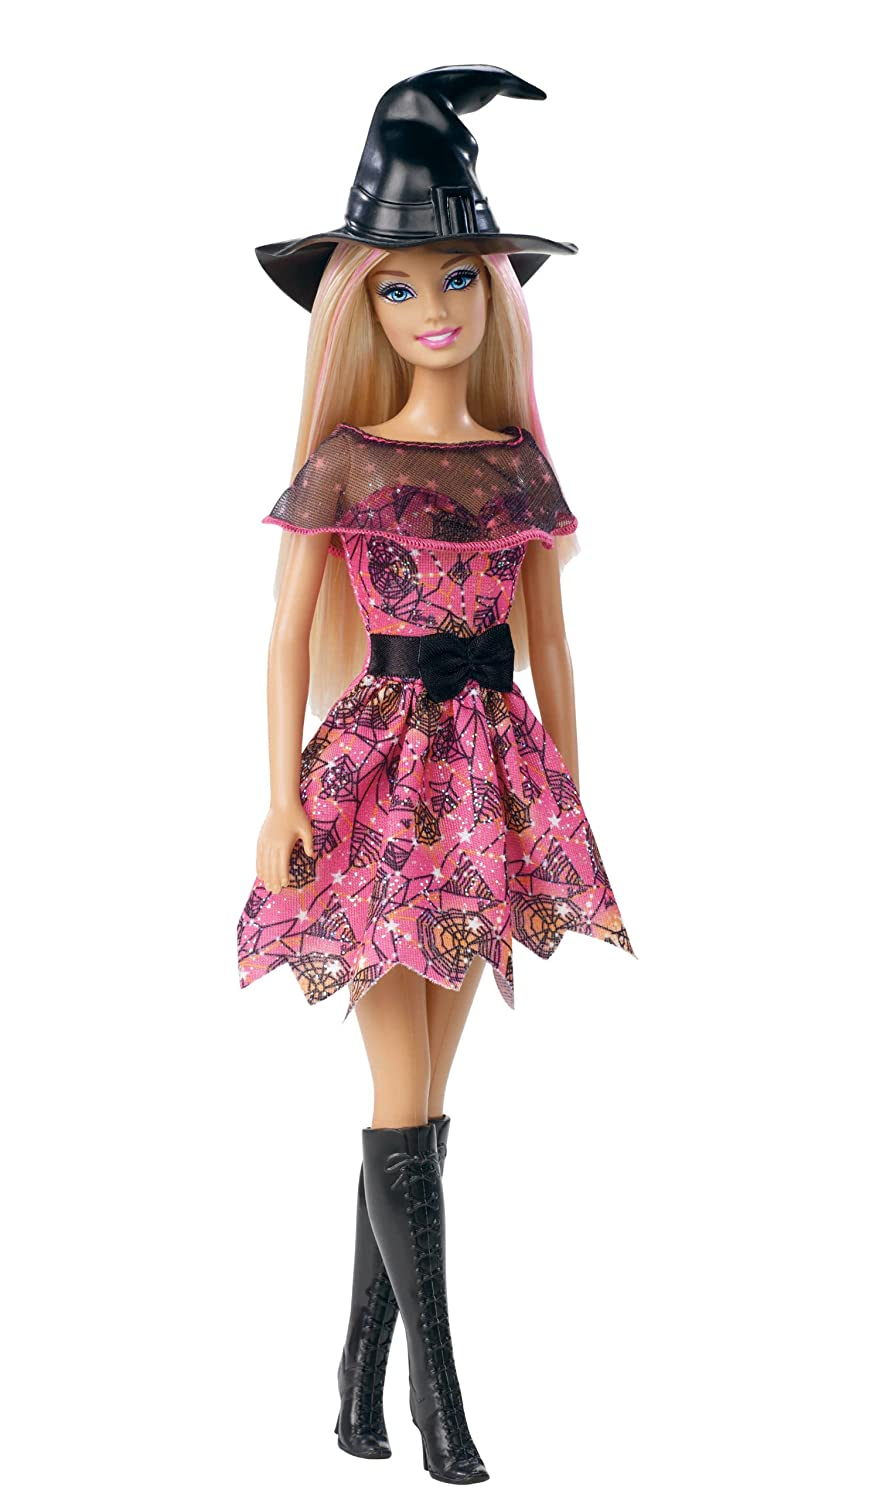 Barbie 2012 Halloween Barbie Doll als Geschenk